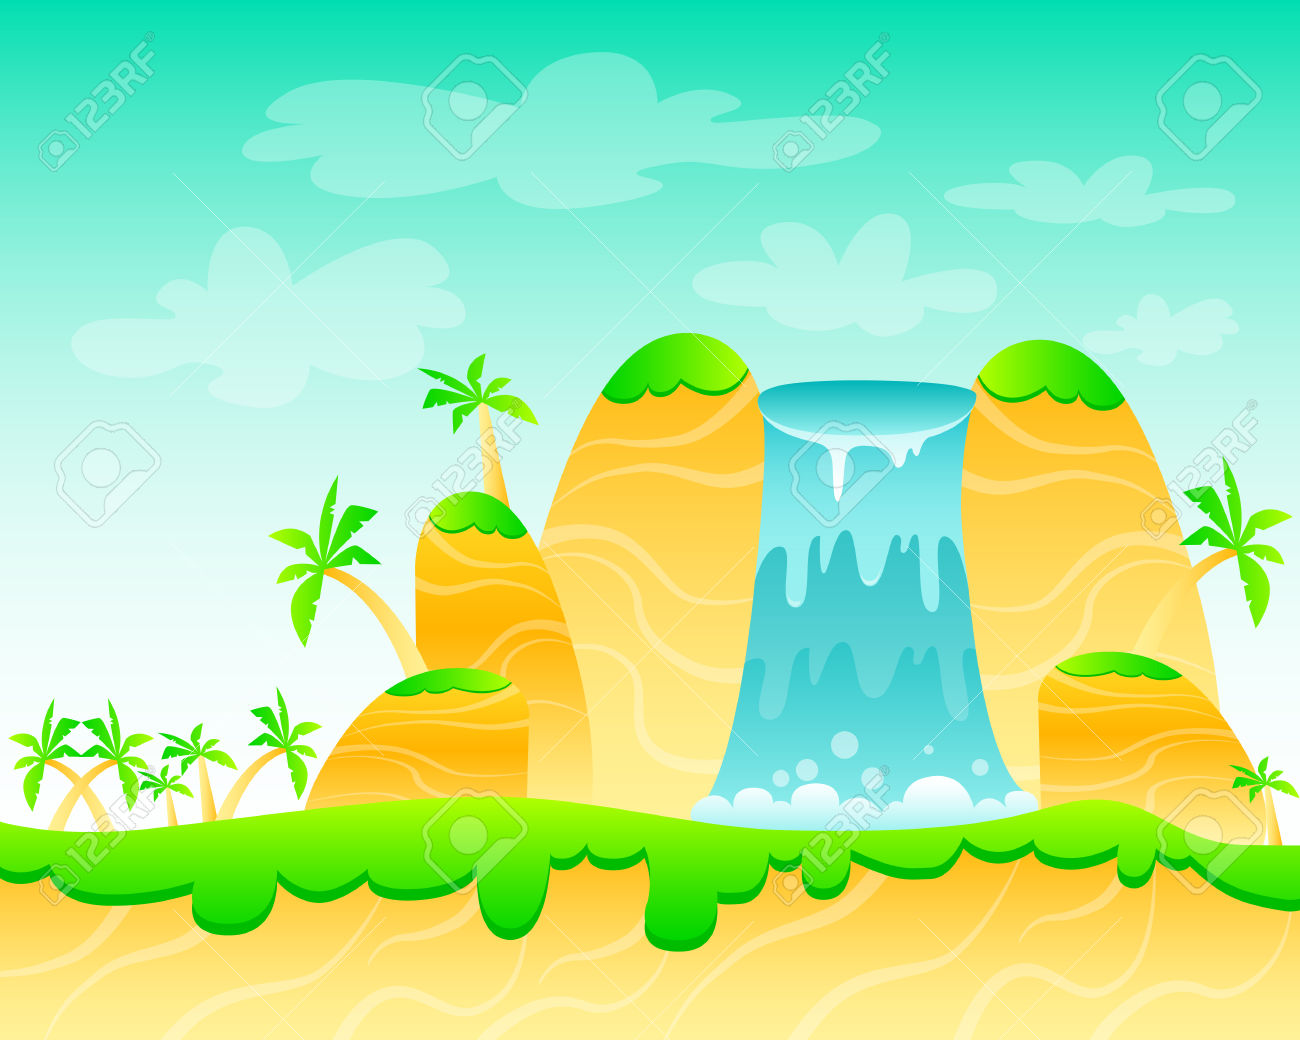 Waterfall And Palm Trees. Game Design. Illustration Royalty Free.